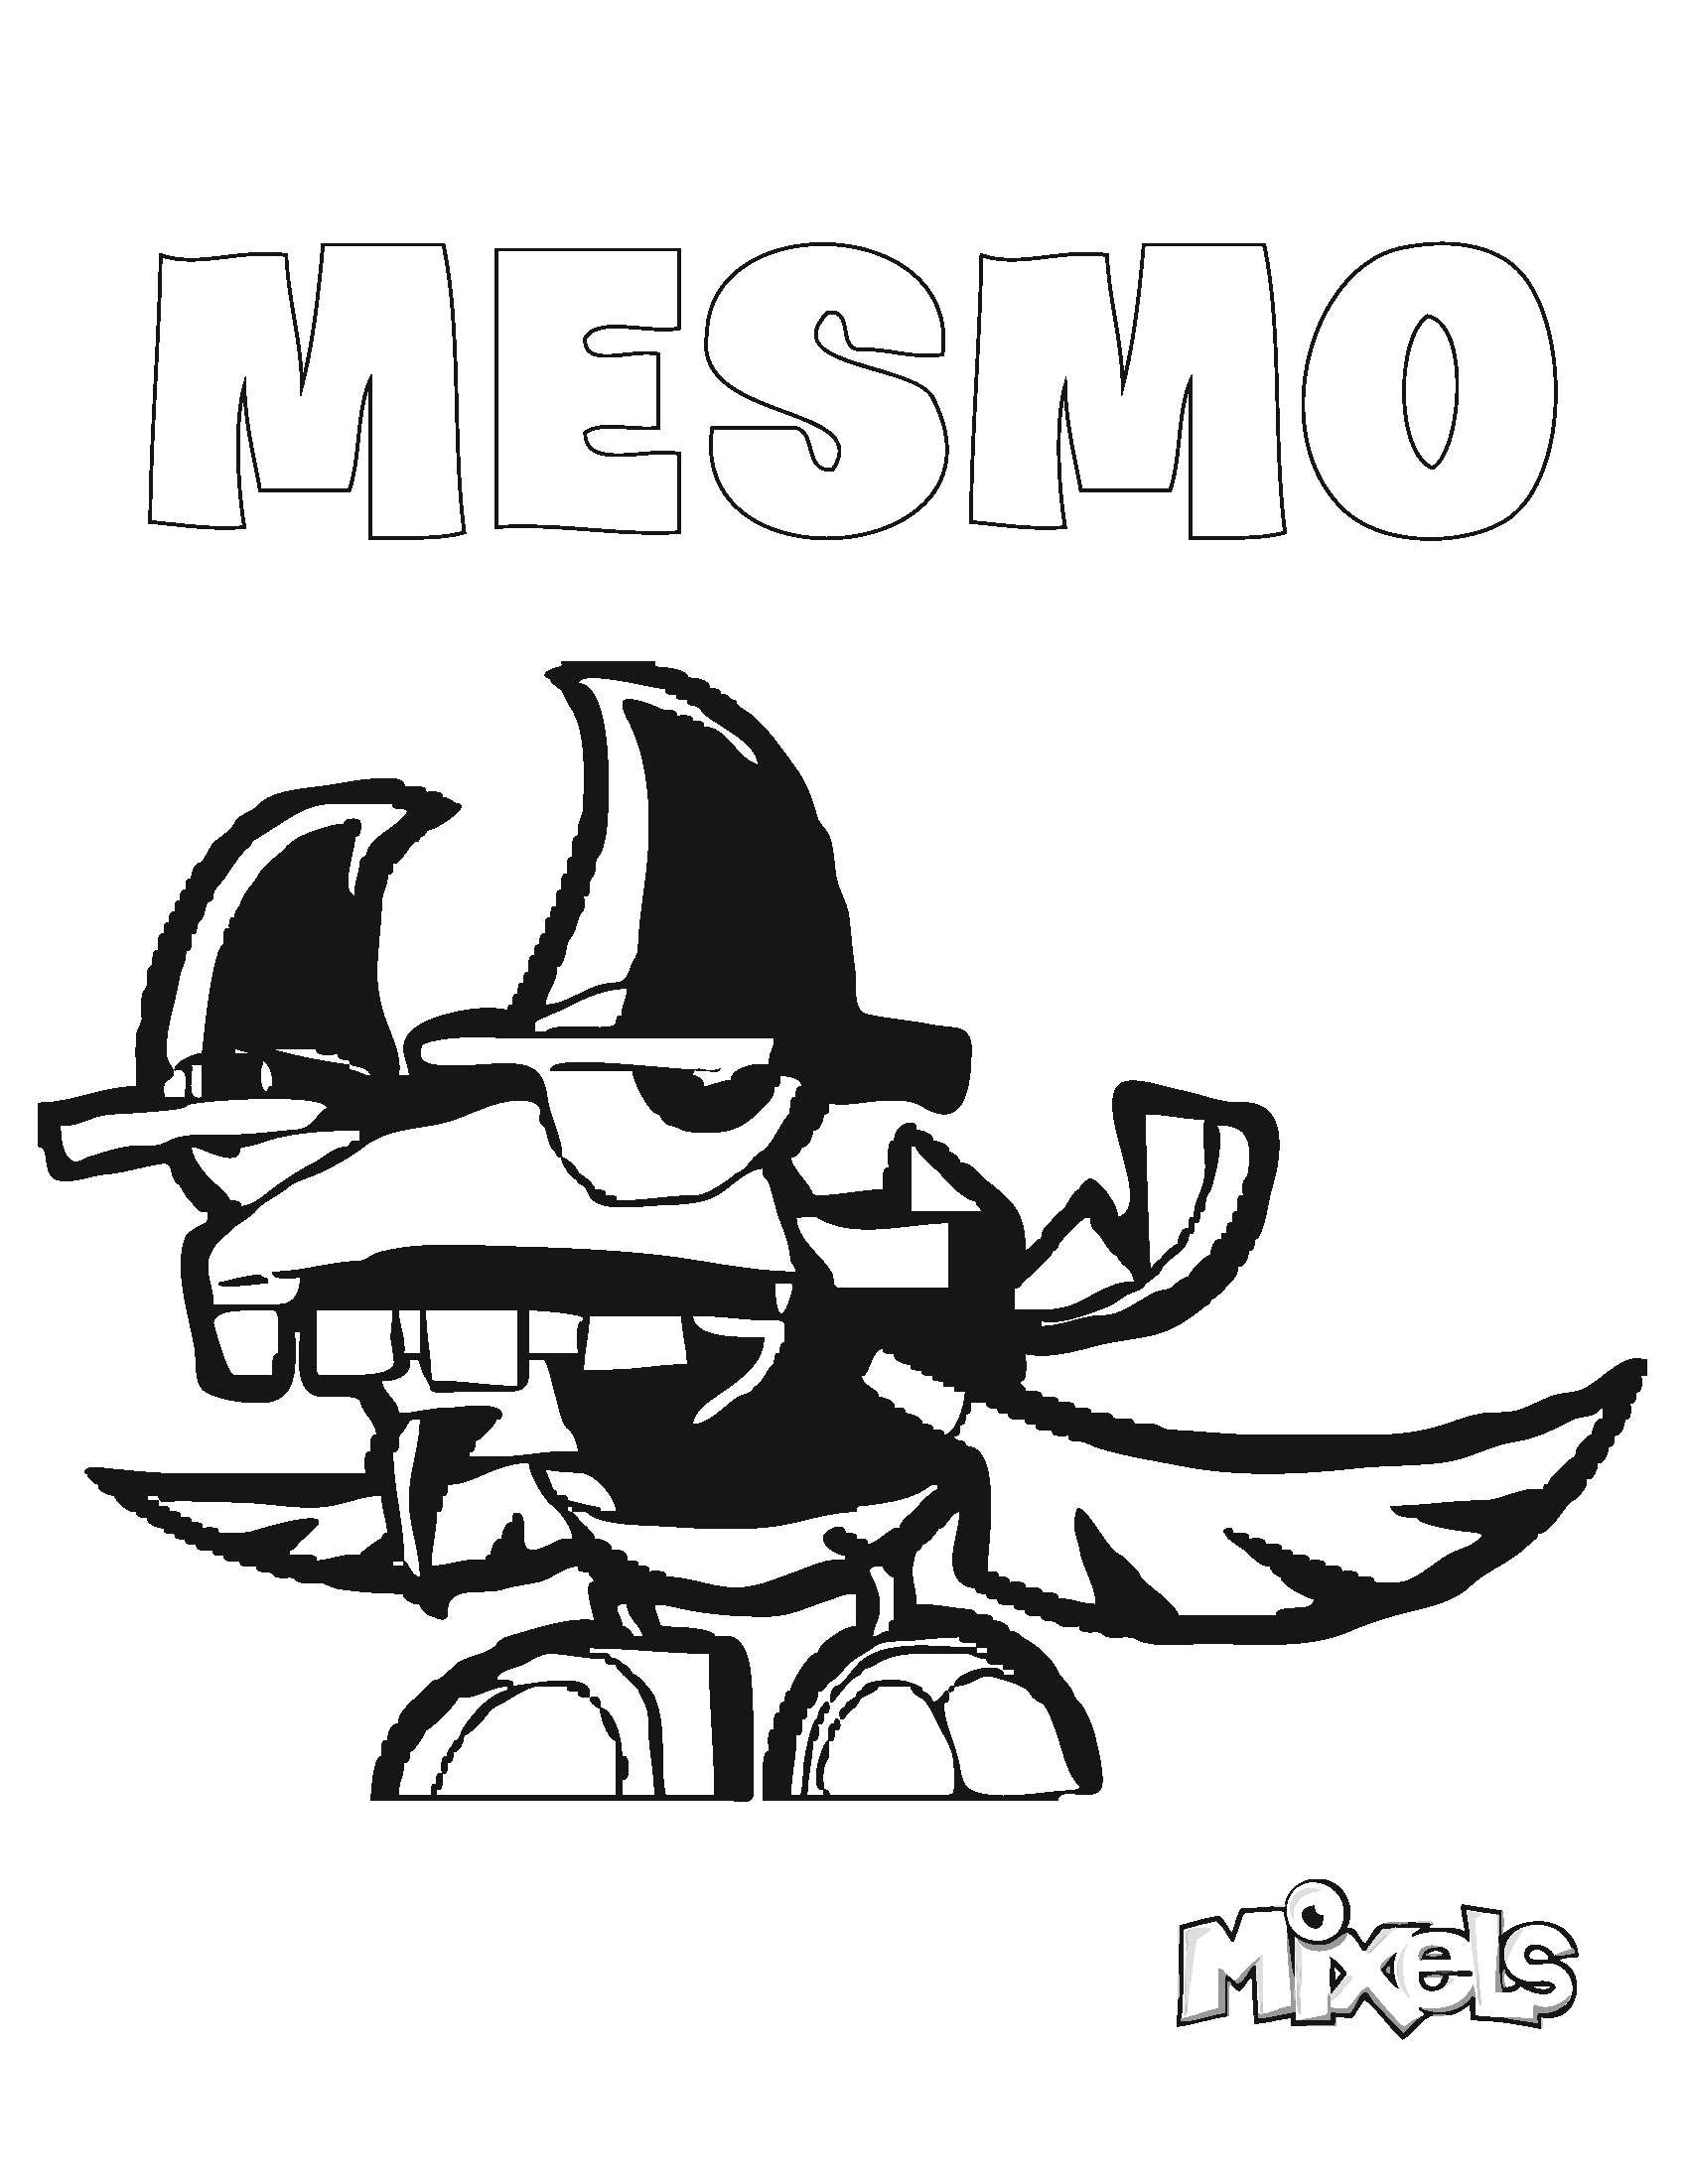 mixels coloring pages series 9 - mixels coloring page mesmo eric 39 s activity pages